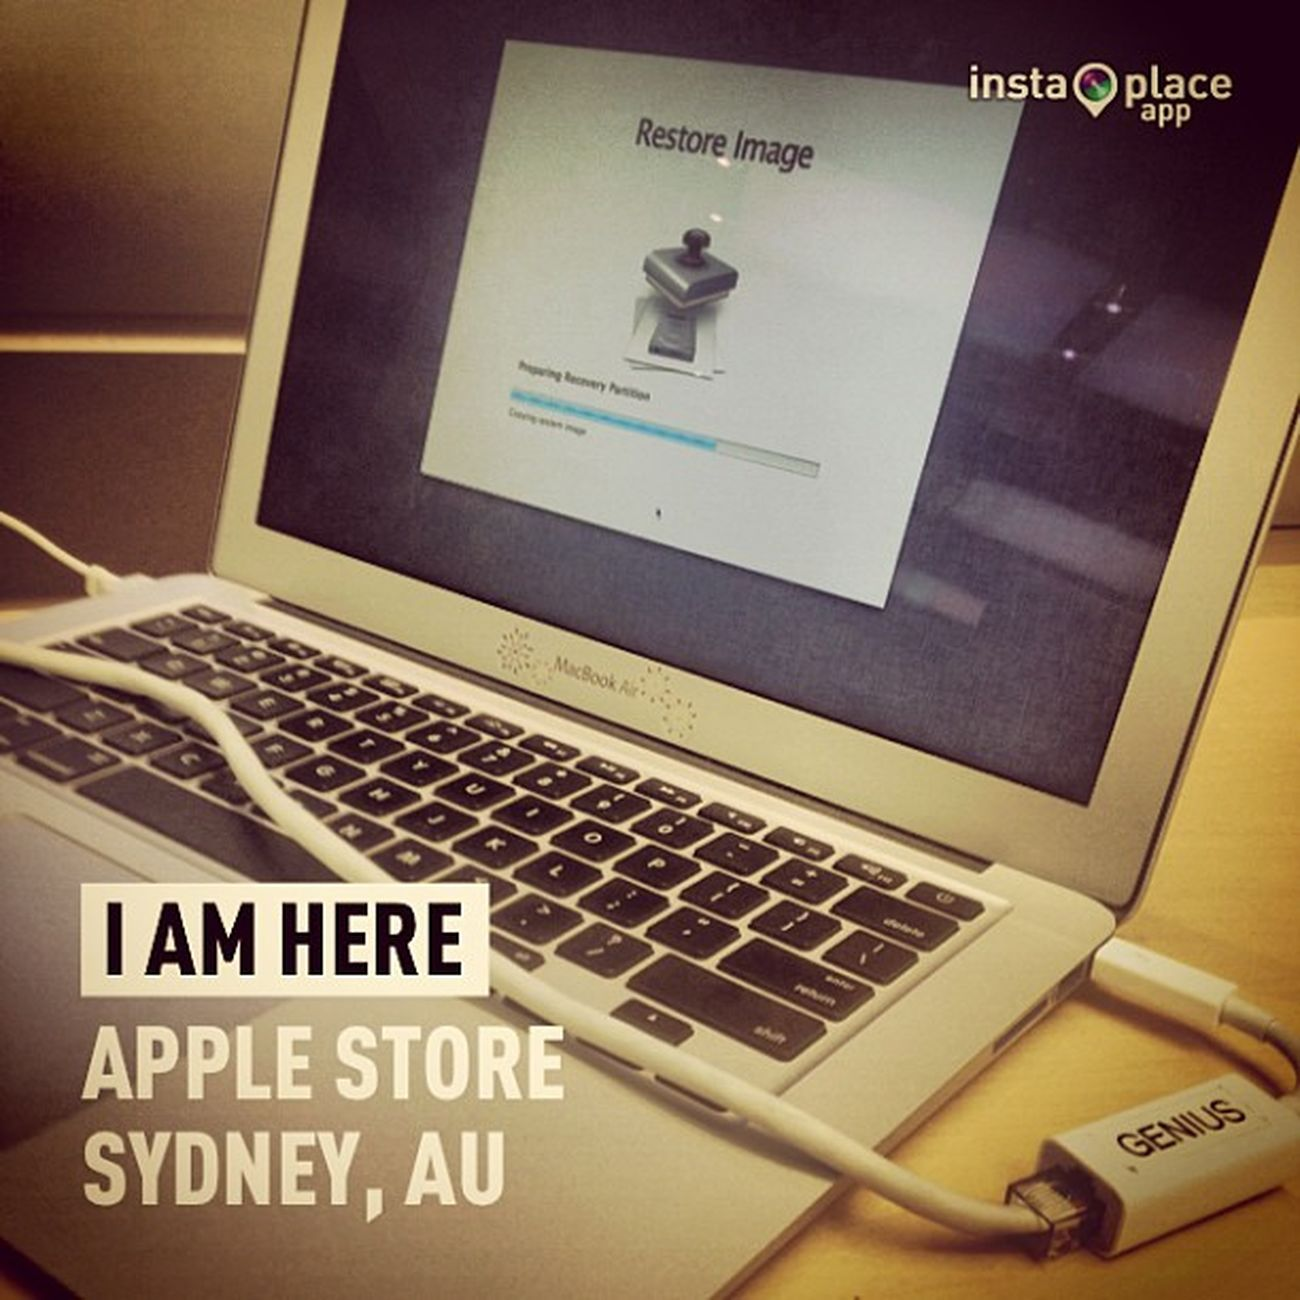 InstaPlace Instaplaceapp Instagood Photooftheday instamood picoftheday instadaily photo instacool instapic picture pic @instaplacemobi place earth world australia AU sydney applestore shopping street day restore